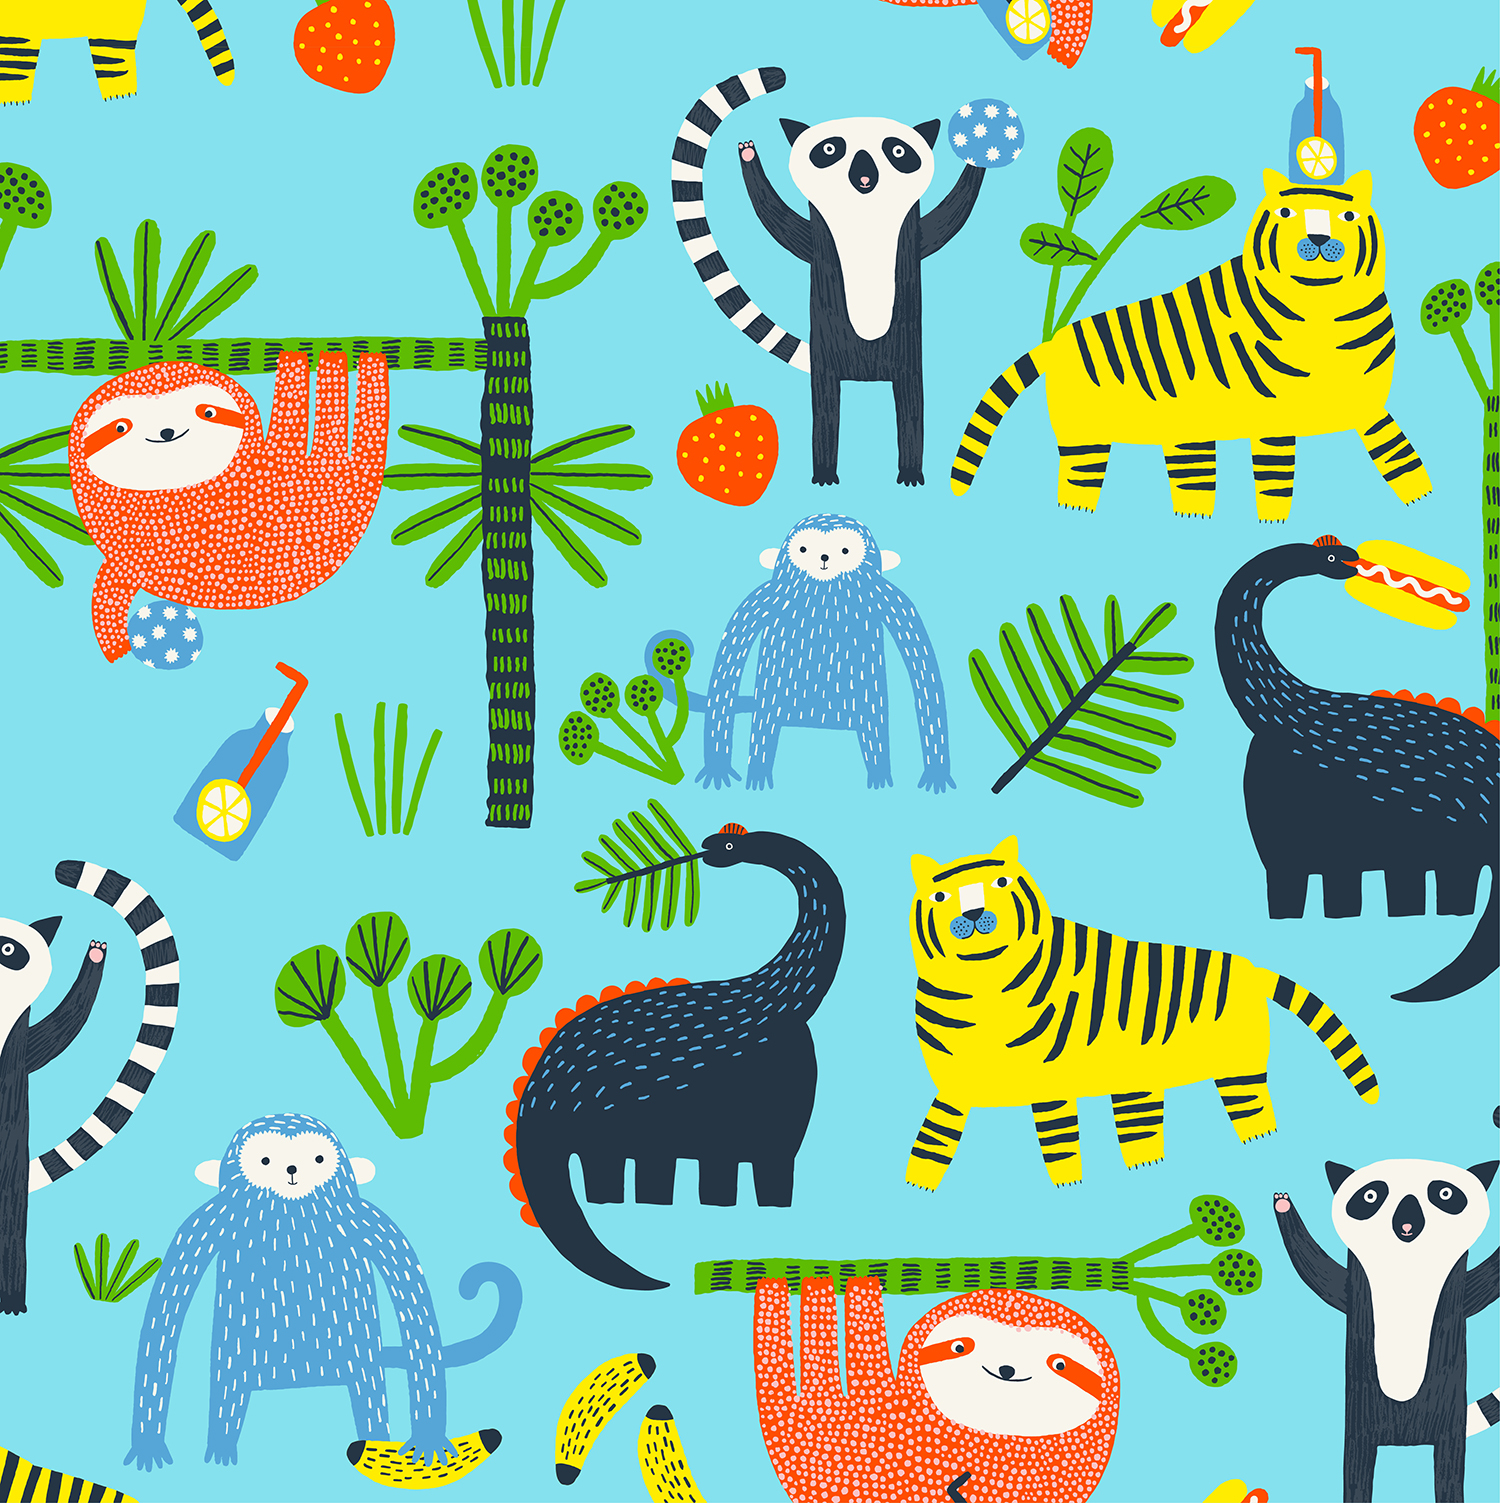 Hema - Jungle print by Aniek Bartels